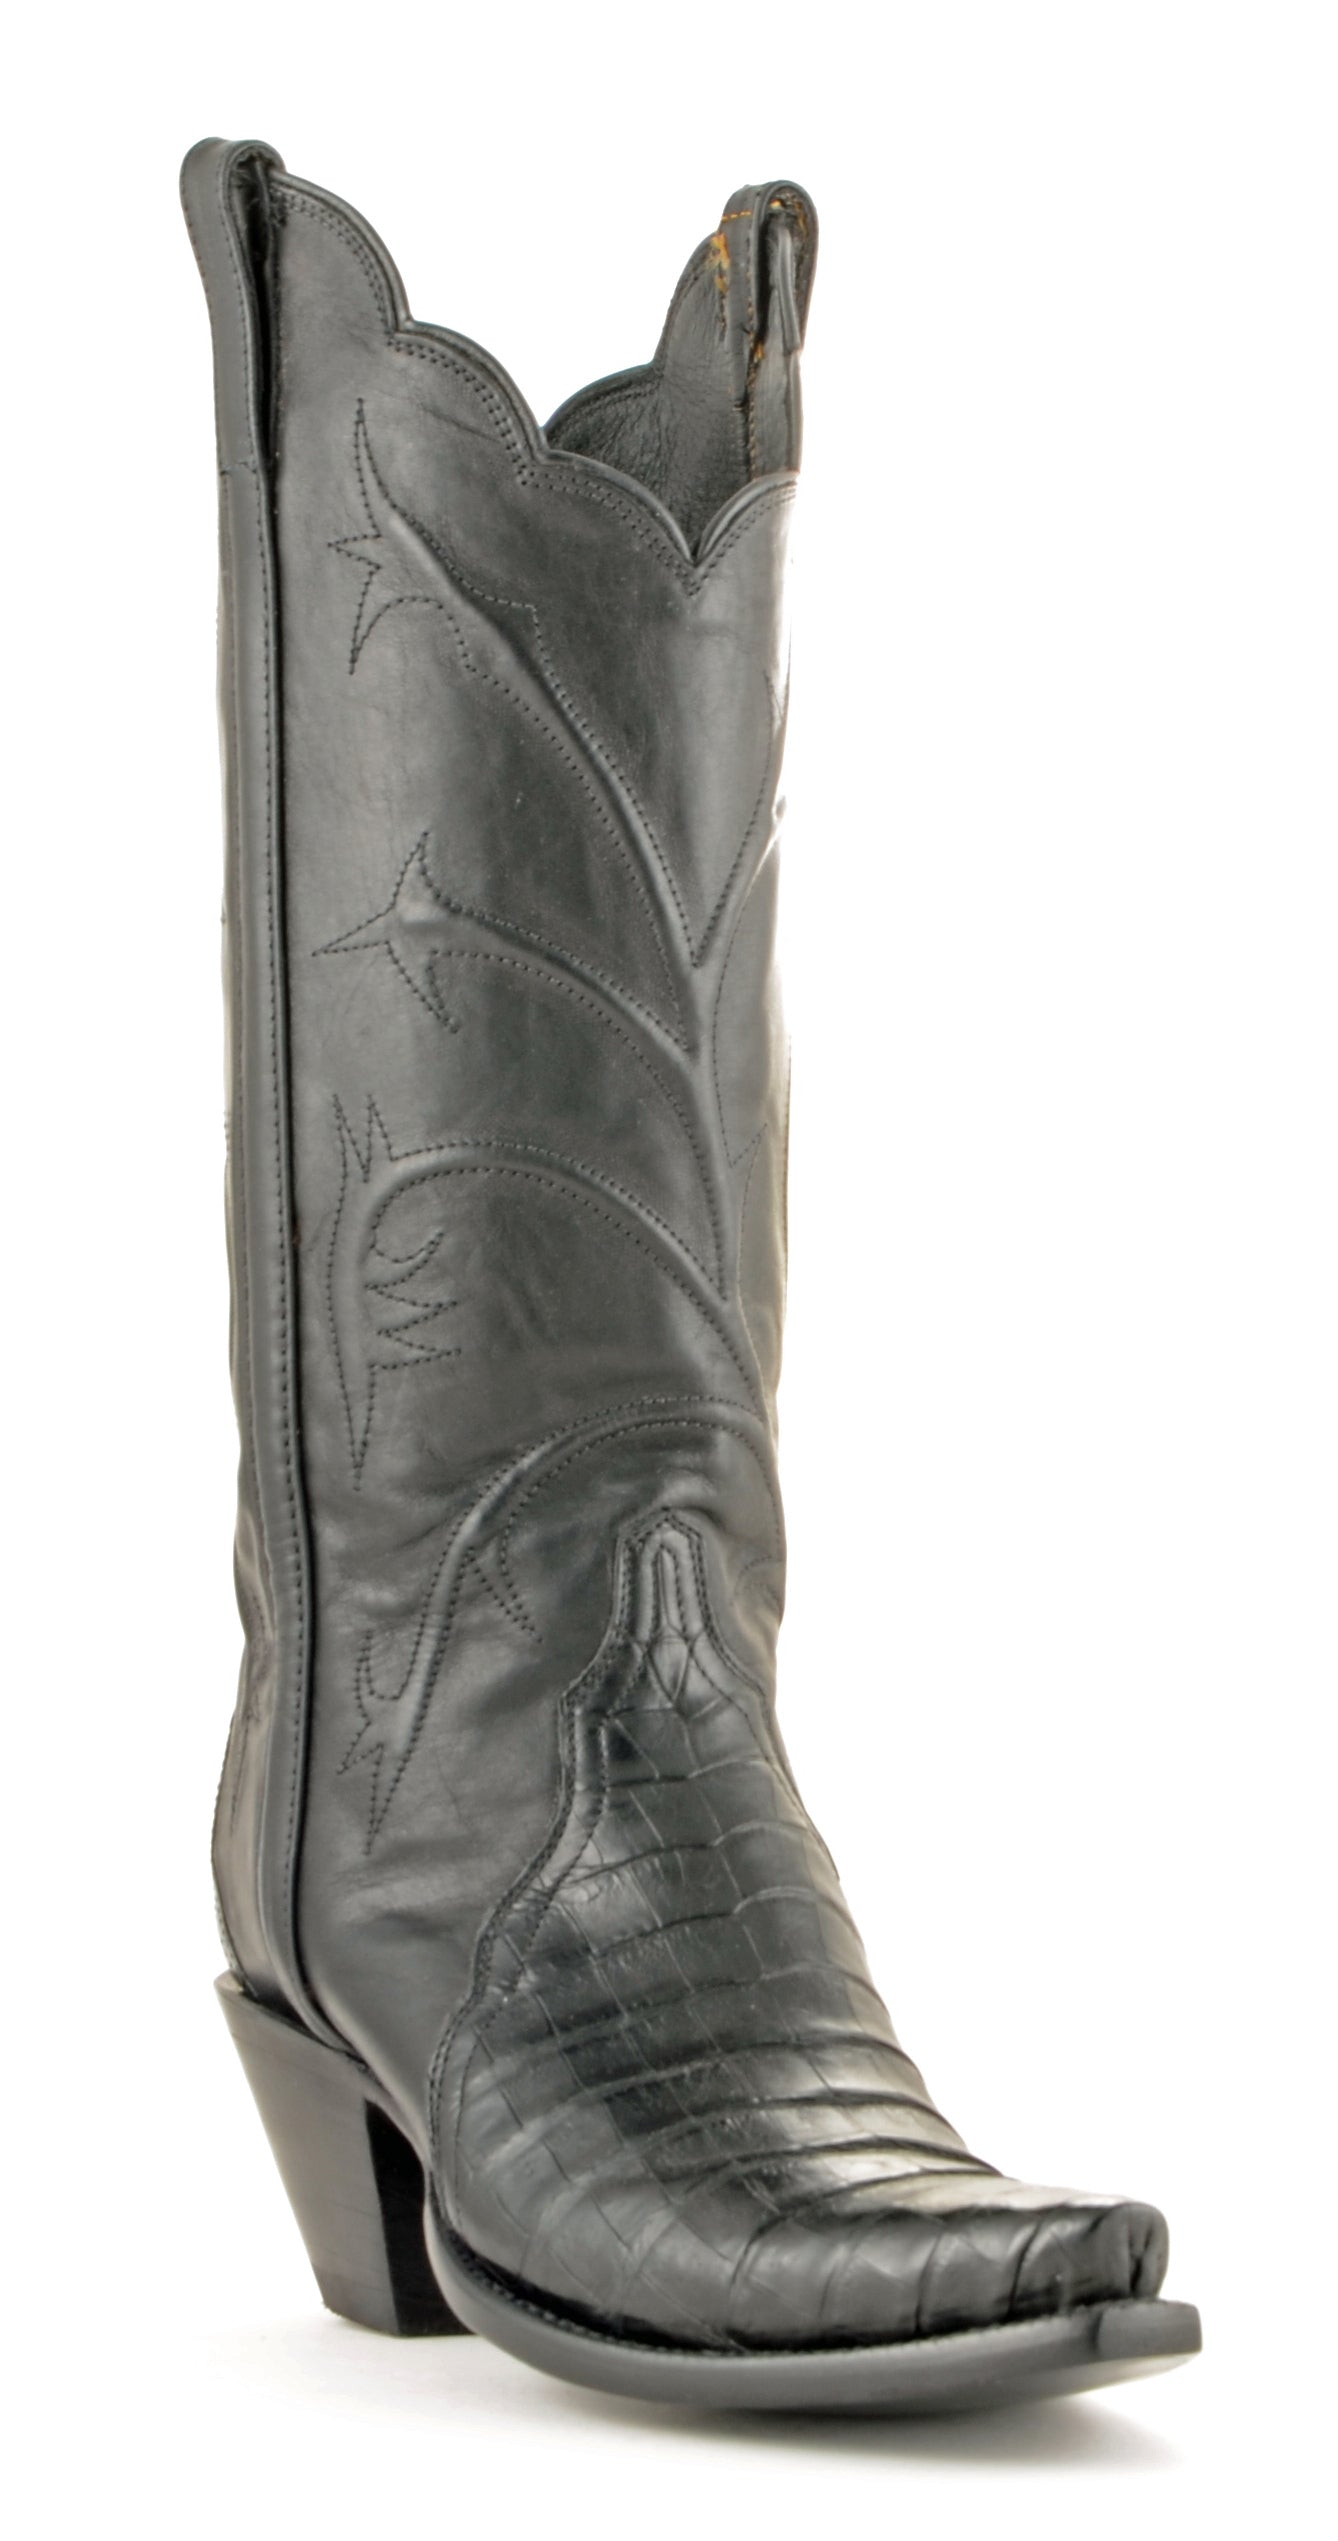 544dc4aa41f Women's Lucchese Classics Ultra Belly Caiman Boots Black #GC9757 ...